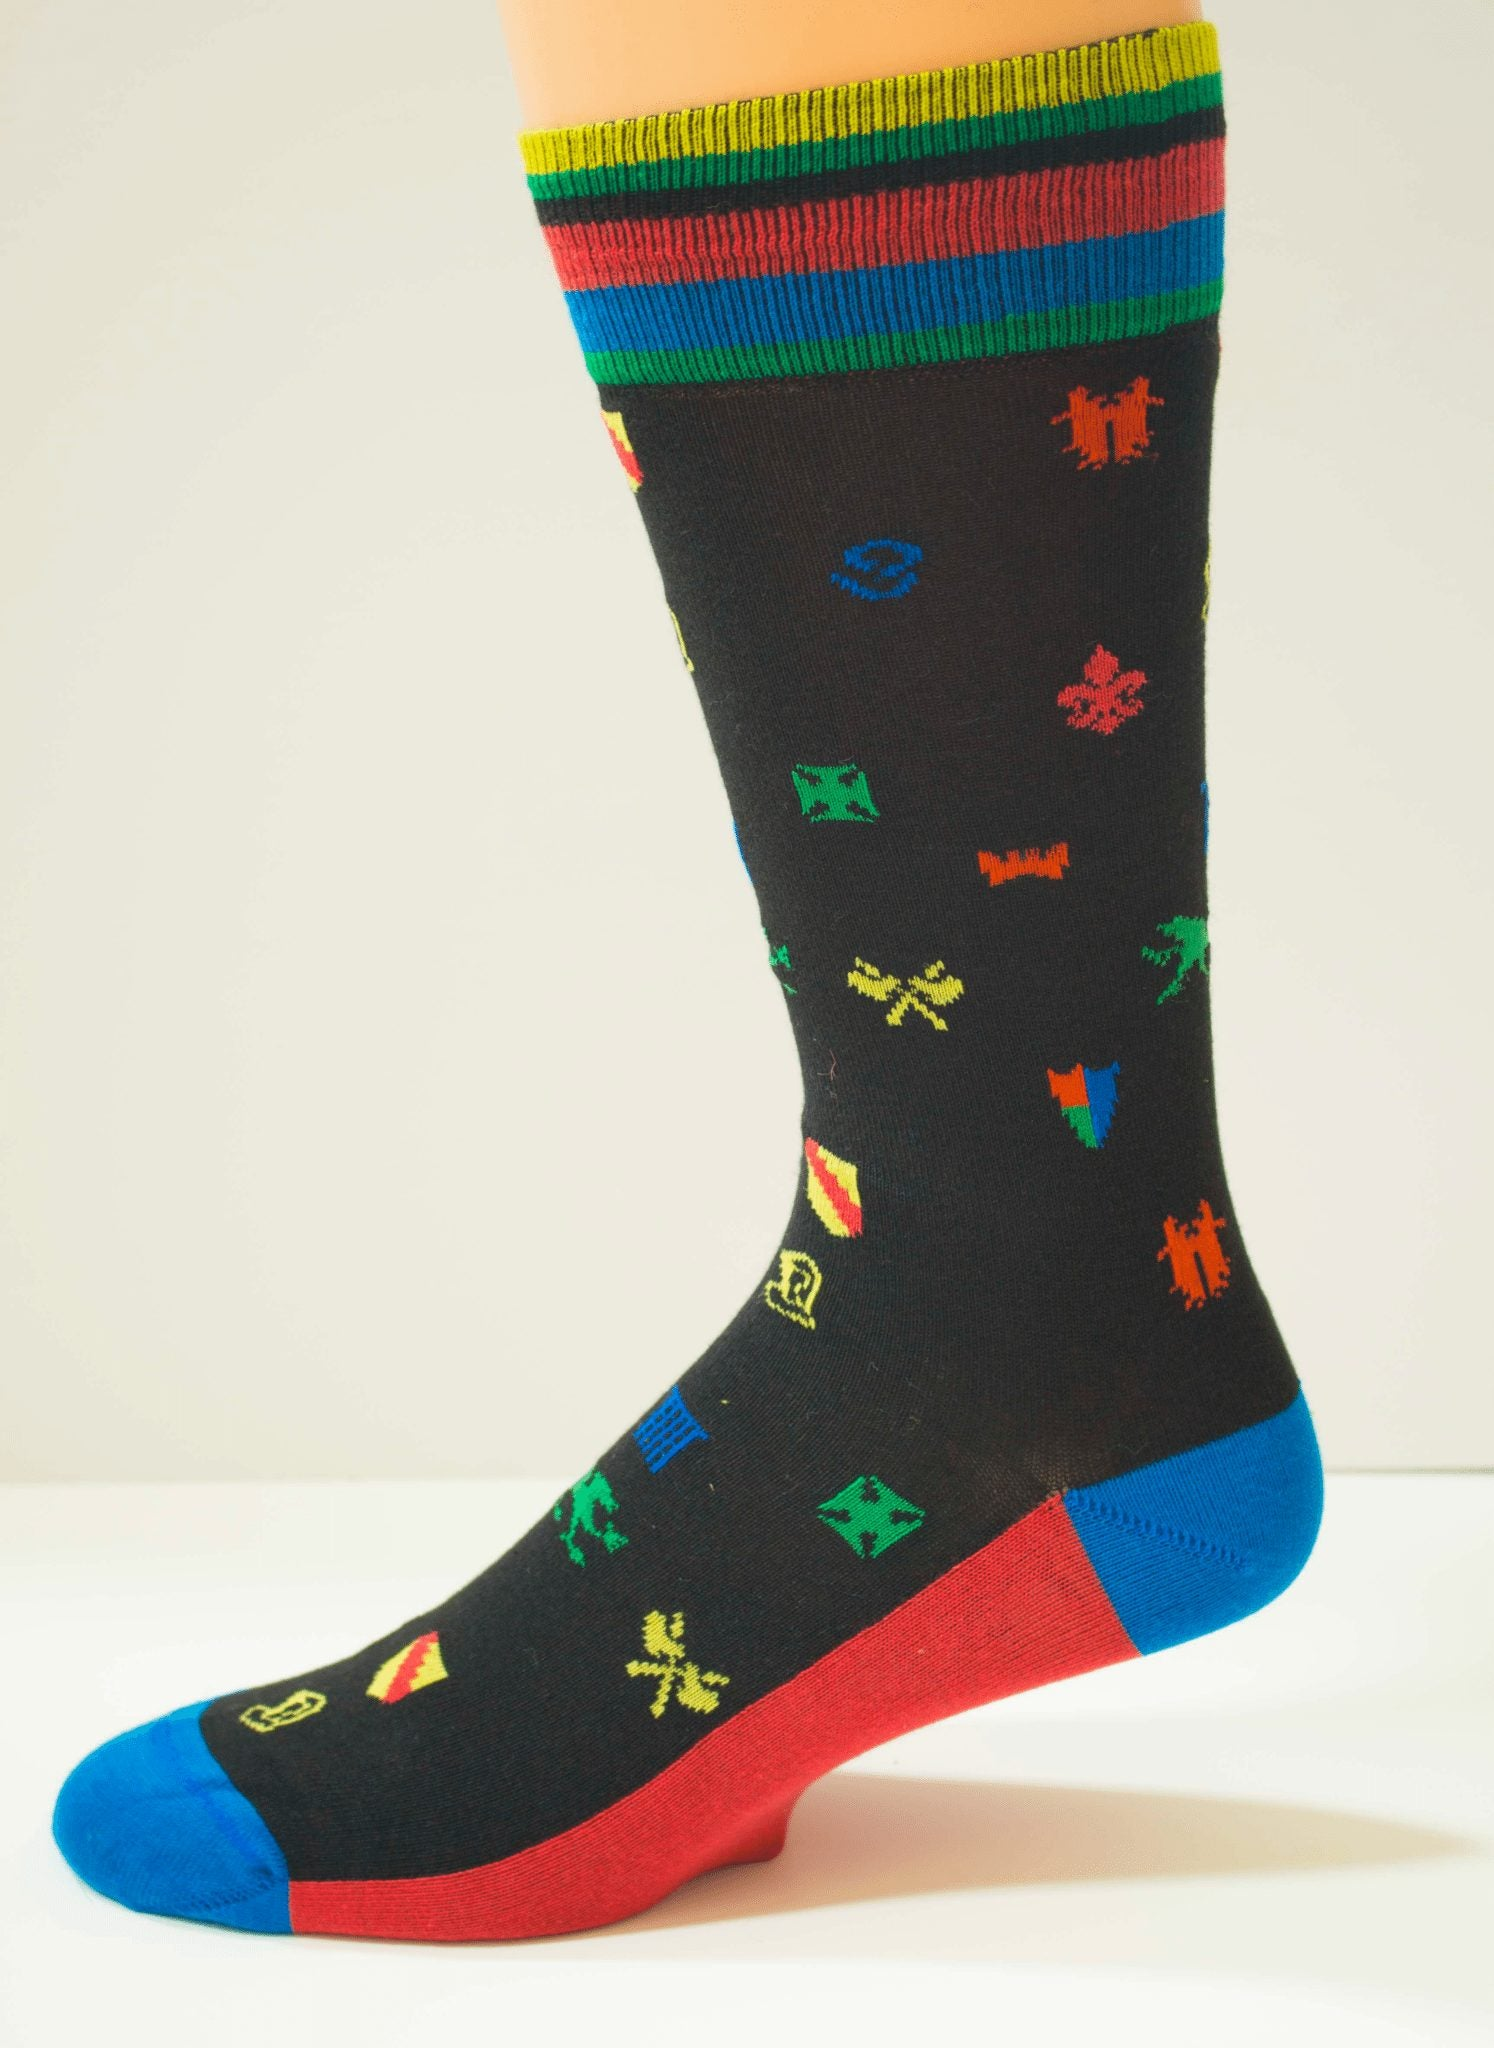 The Black Knight Women's Socks